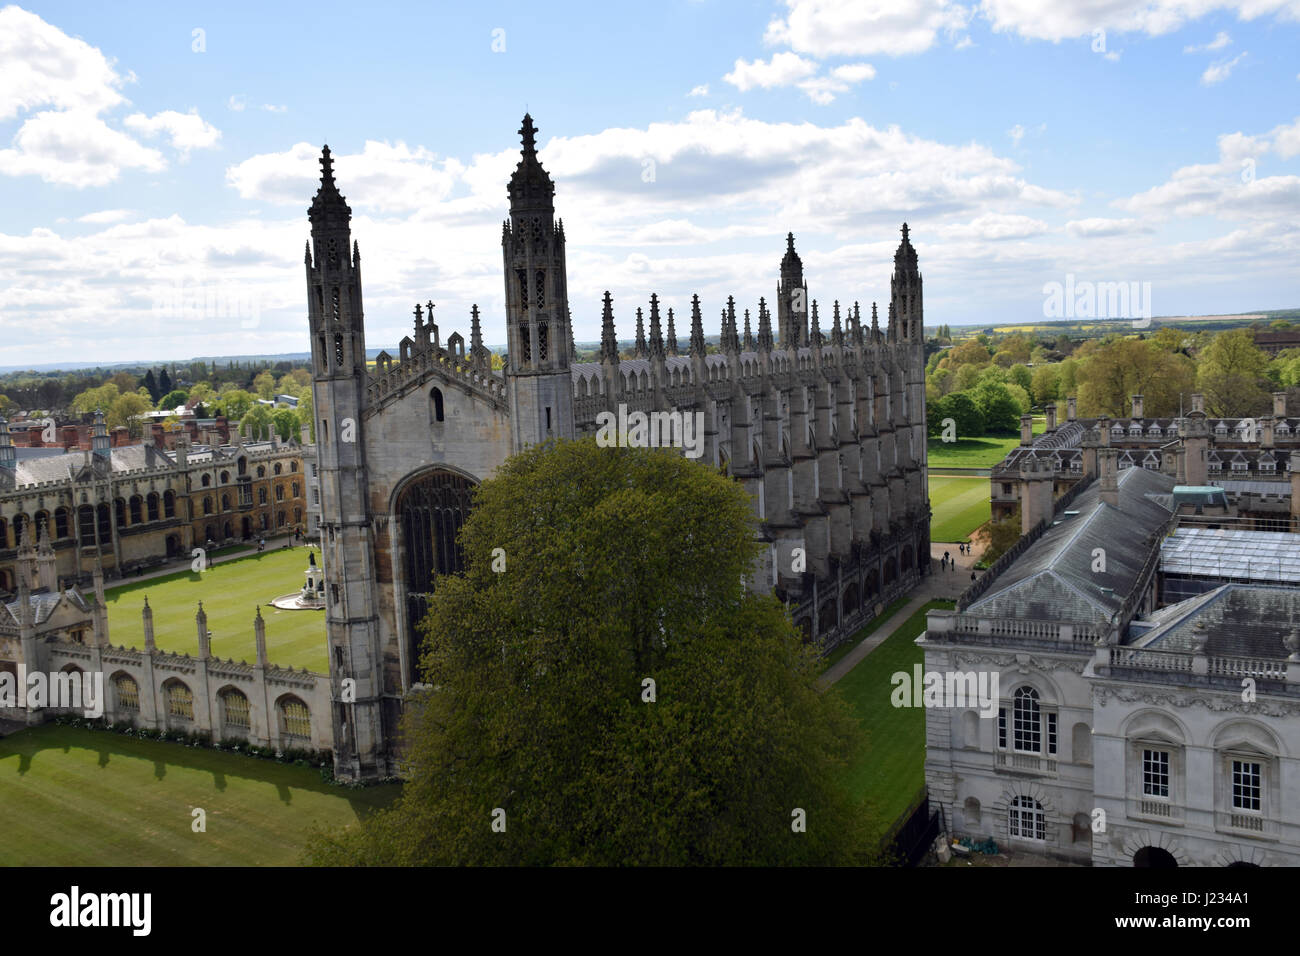 Kings College Chapel, University of Cambridge - Stock Image